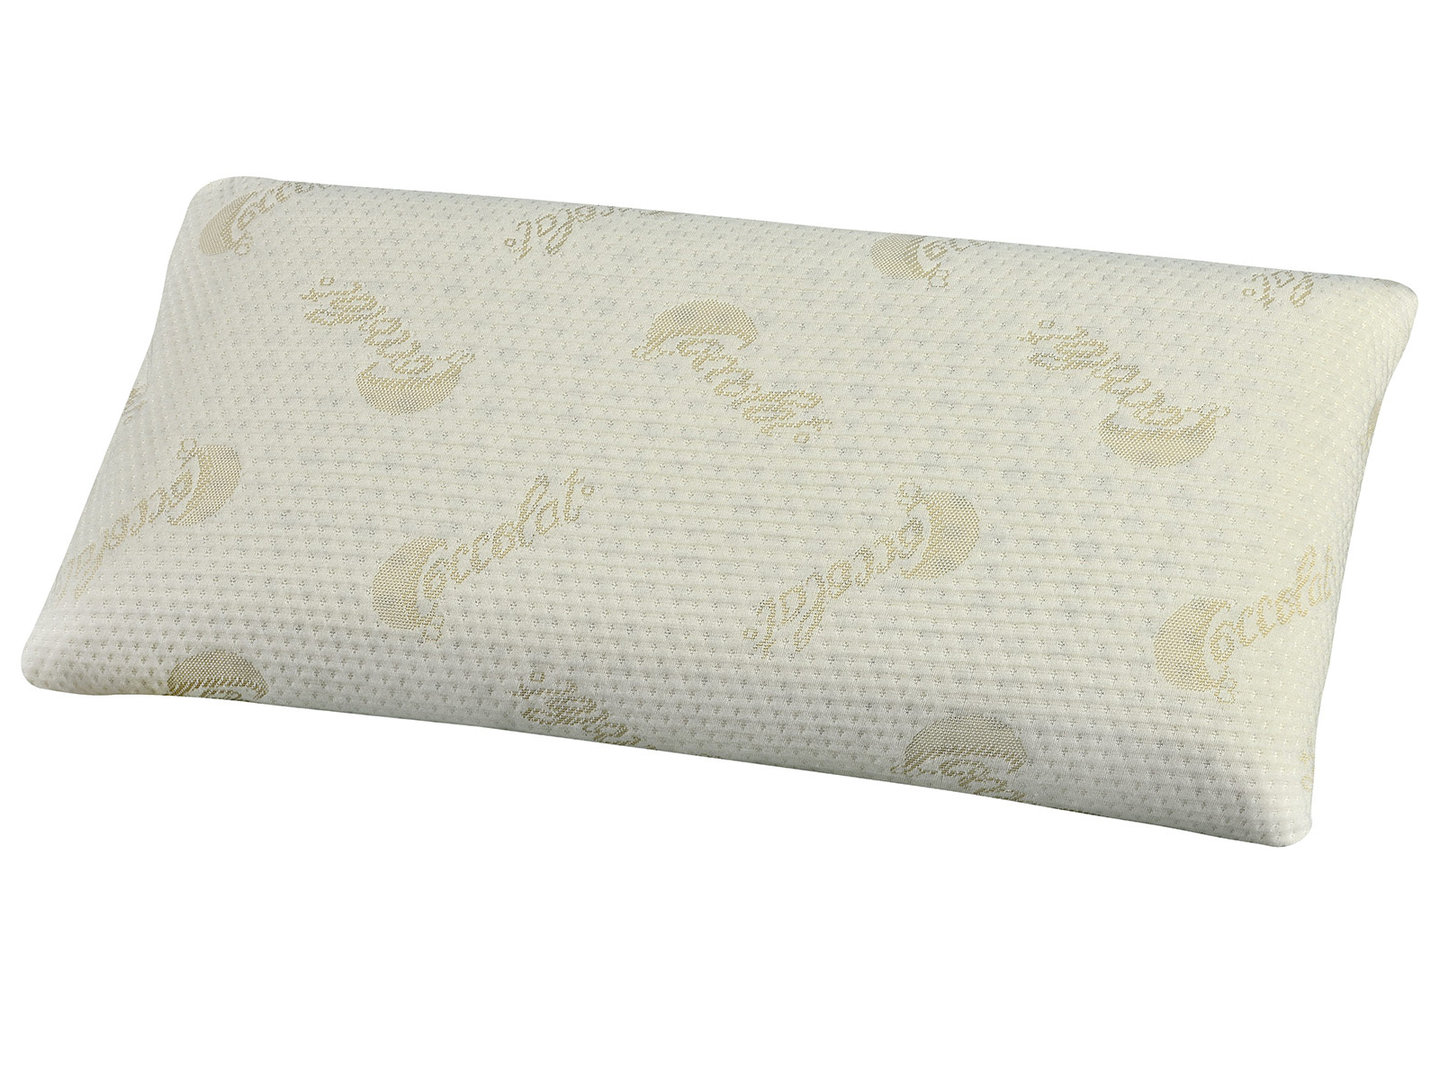 ALMOHADA LATEX 100% NATURAL - 70 cm